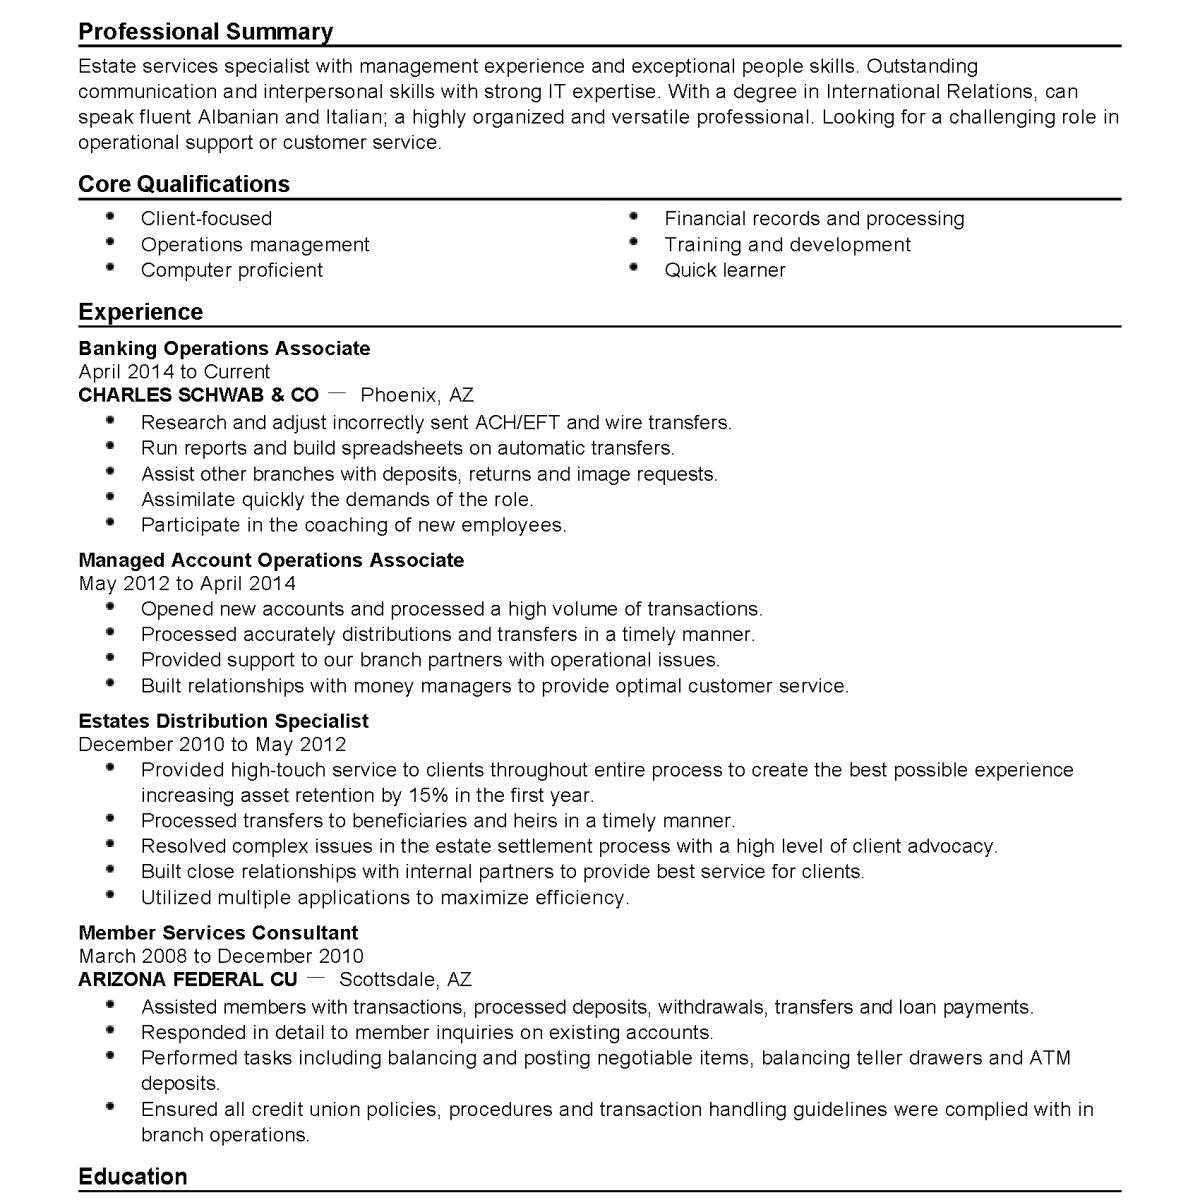 I Am A Fast Learner Cover Letter Cover Letter Quick Learner Experience Resumes